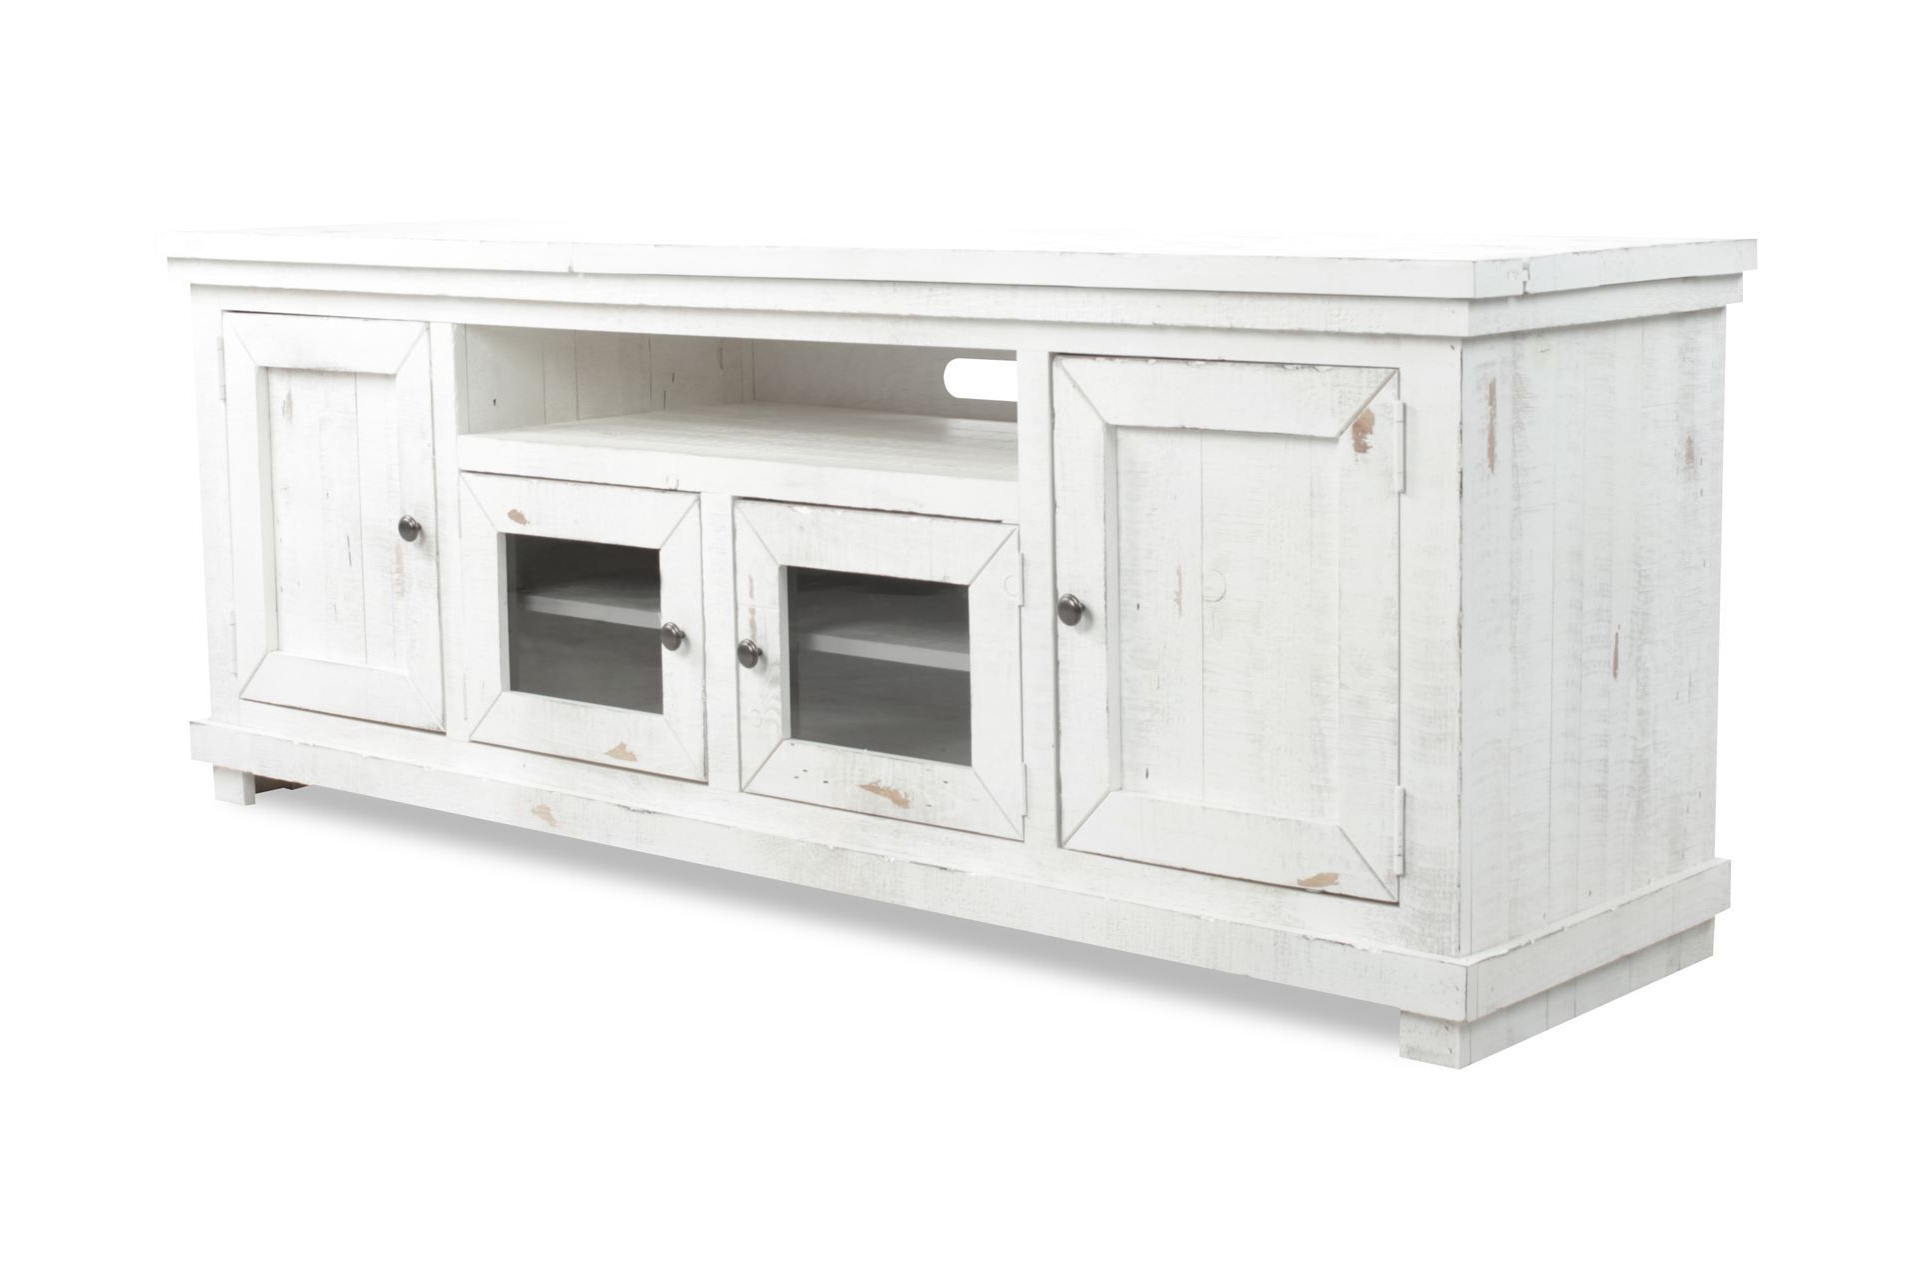 Sinclair White 74 Inch Tv Stand | Home Ideas | Pinterest | Living Inside Sinclair White 74 Inch Tv Stands (Gallery 3 of 20)